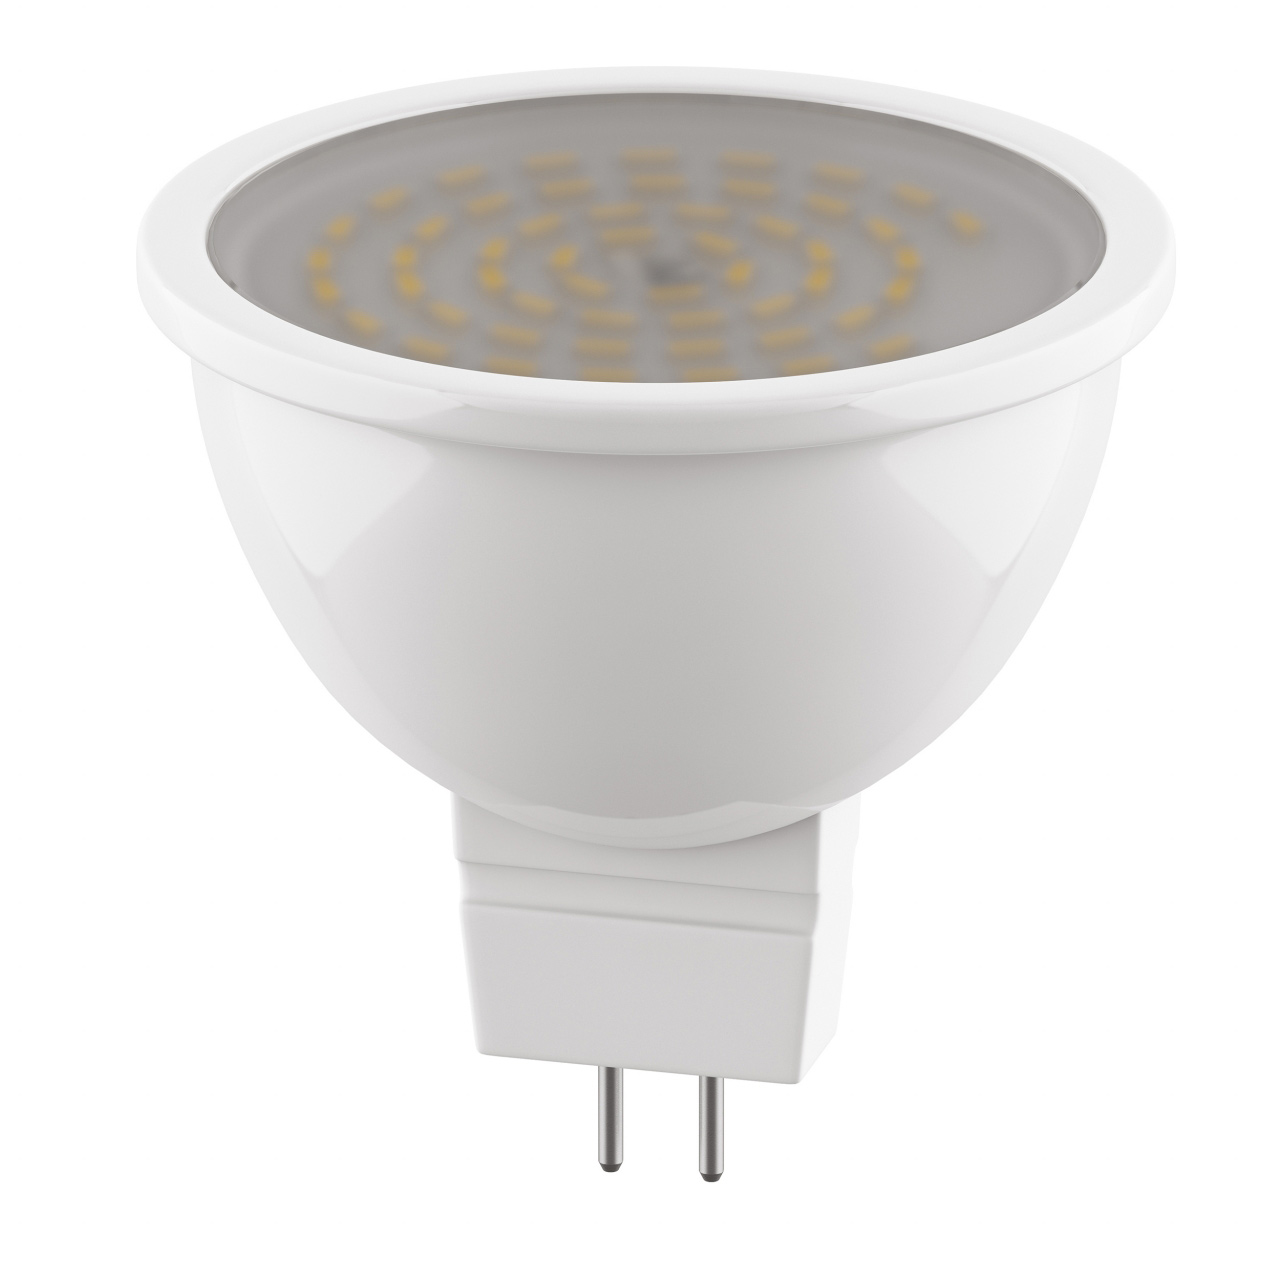 Лампа LED 220V MR16 G5.3 4.5W=40W 195LM 120G FR 4000K 20000H Lightstar 940204